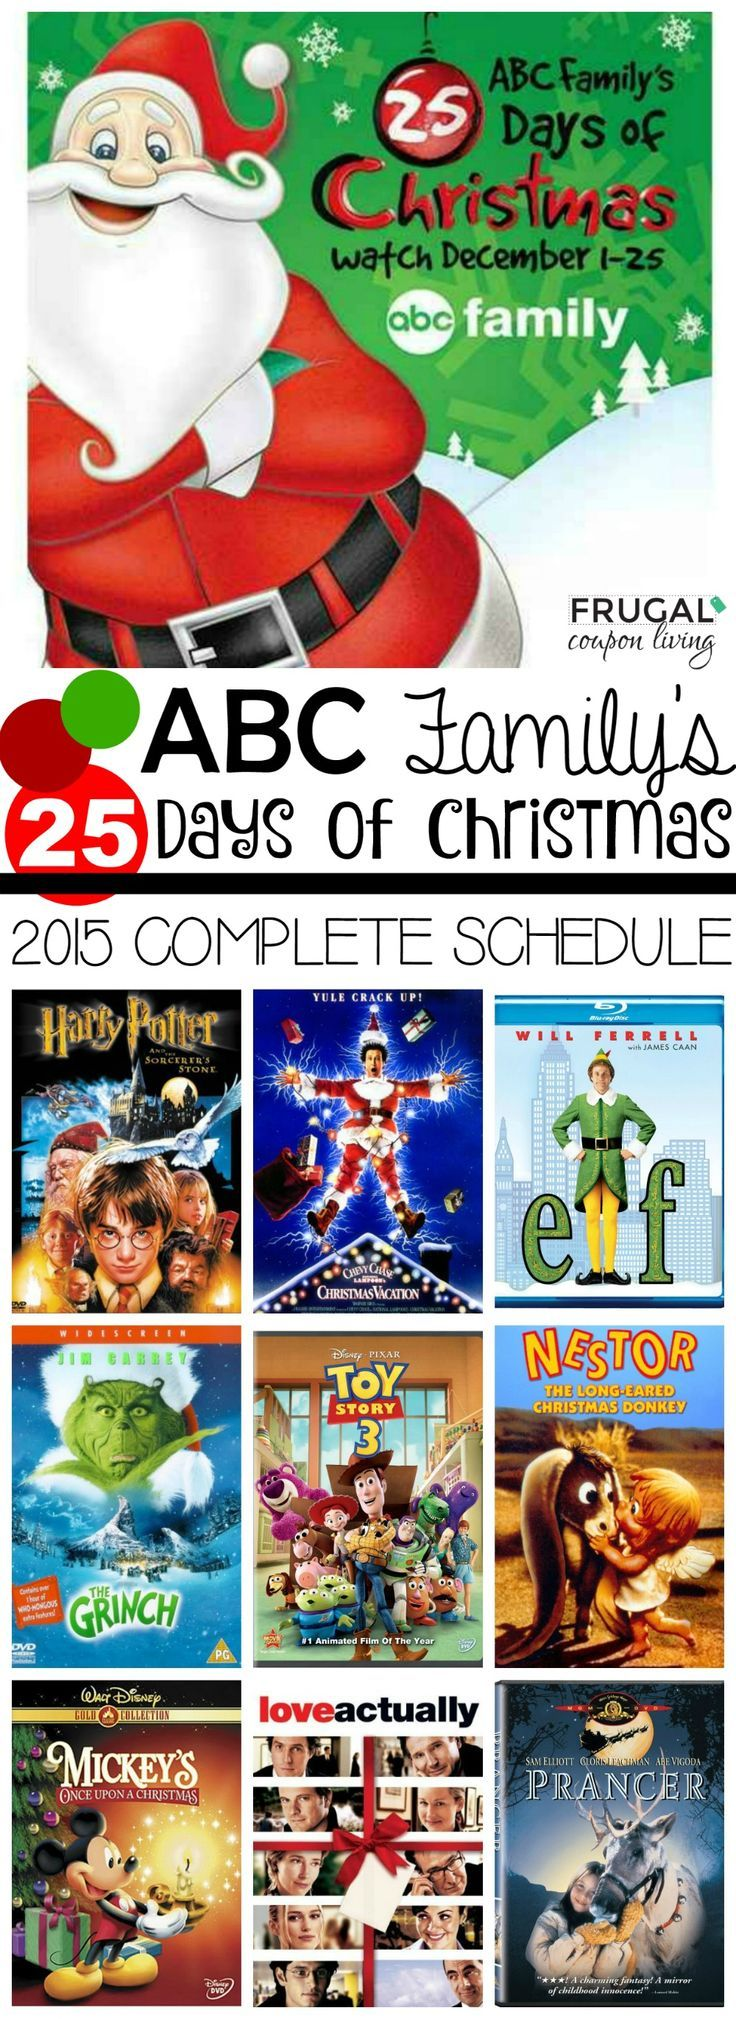 2015 ABC Family 25 Days of Christmas Schedule - Entire list of Movies for the entire Christmas Season December 1 to 25, 2015.